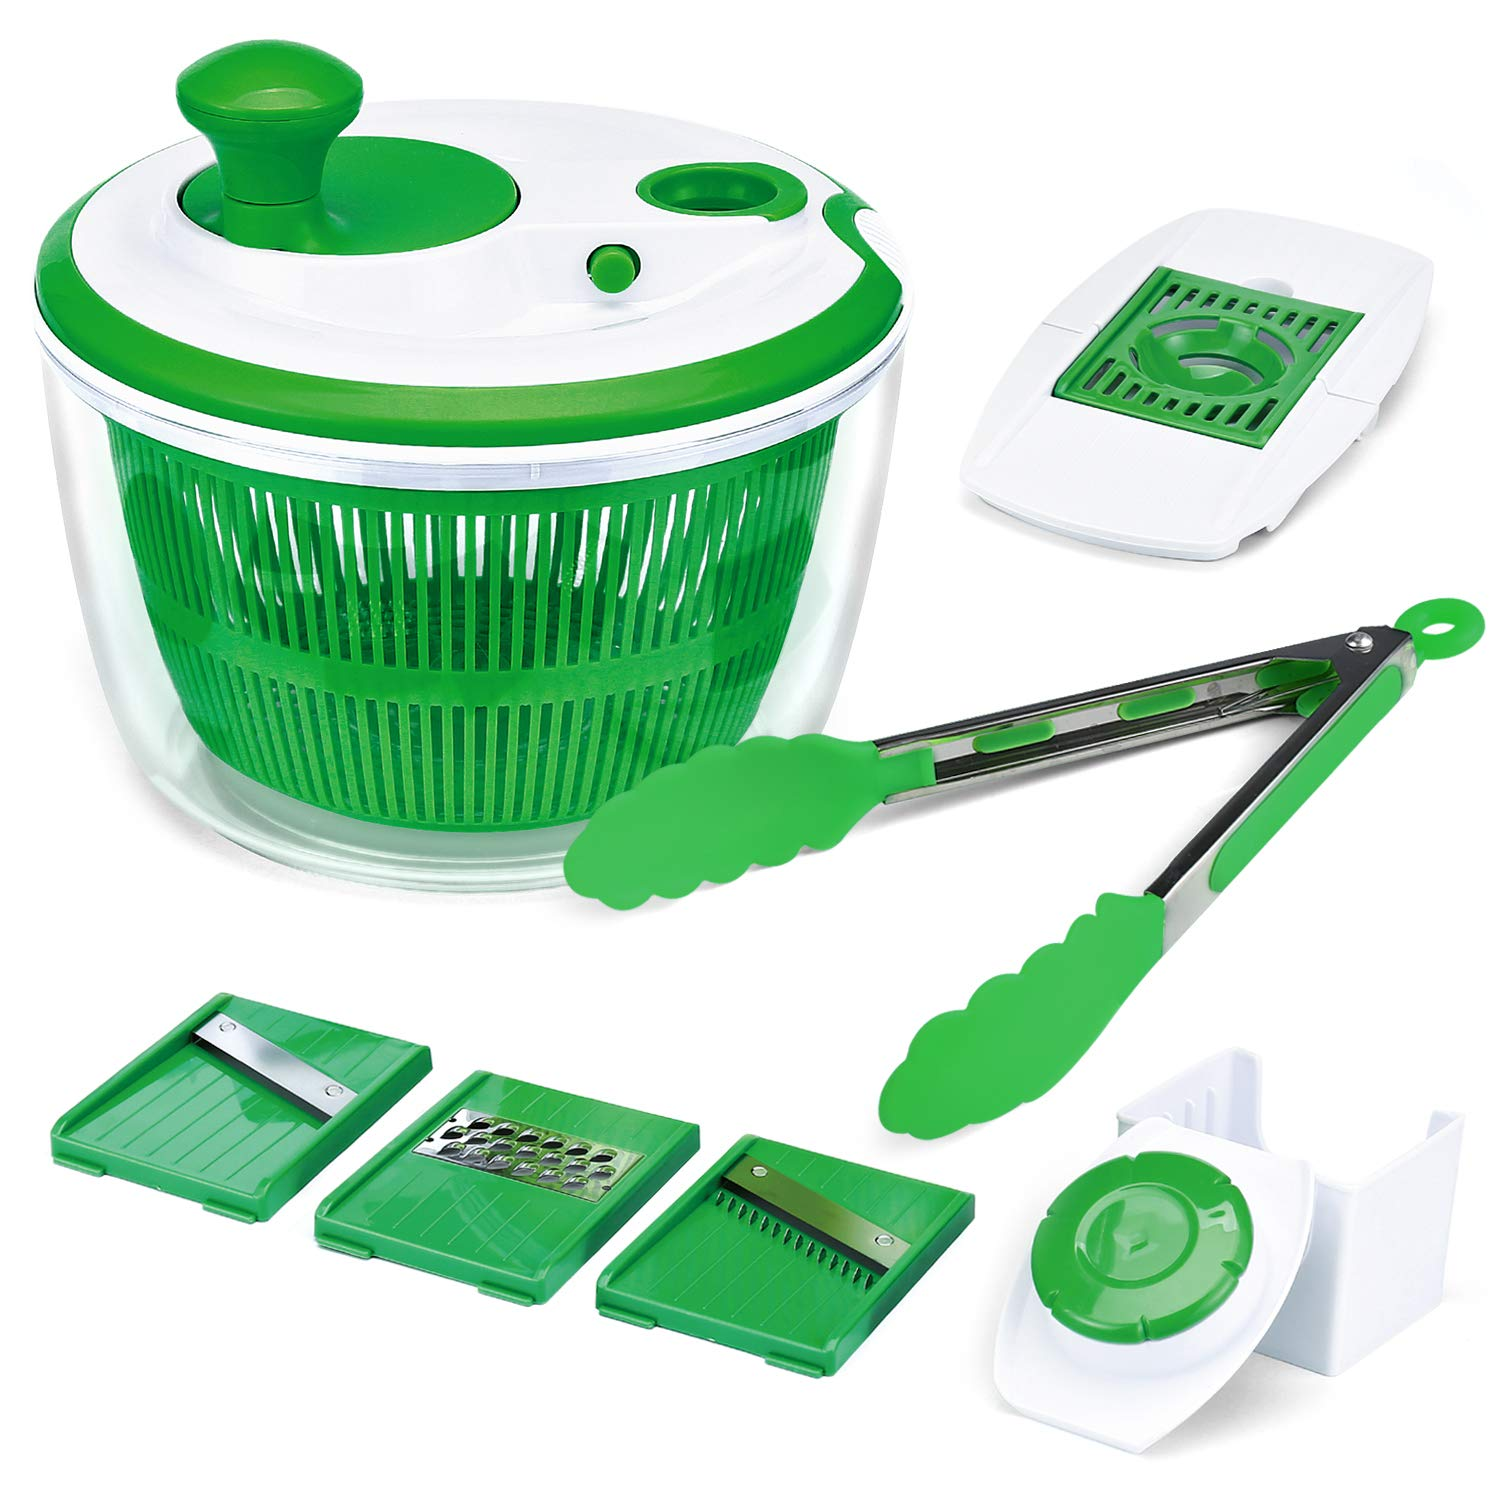 B07K9PTPNF Iseason Salad Spinner, Large Vegetable Washer Dryer with Bowl, Lettuce Washer with Vegetable Chopper, Onion Slicer Food Dicer,5L large Capacity (with Food Clip) 71OMhXwP8rL